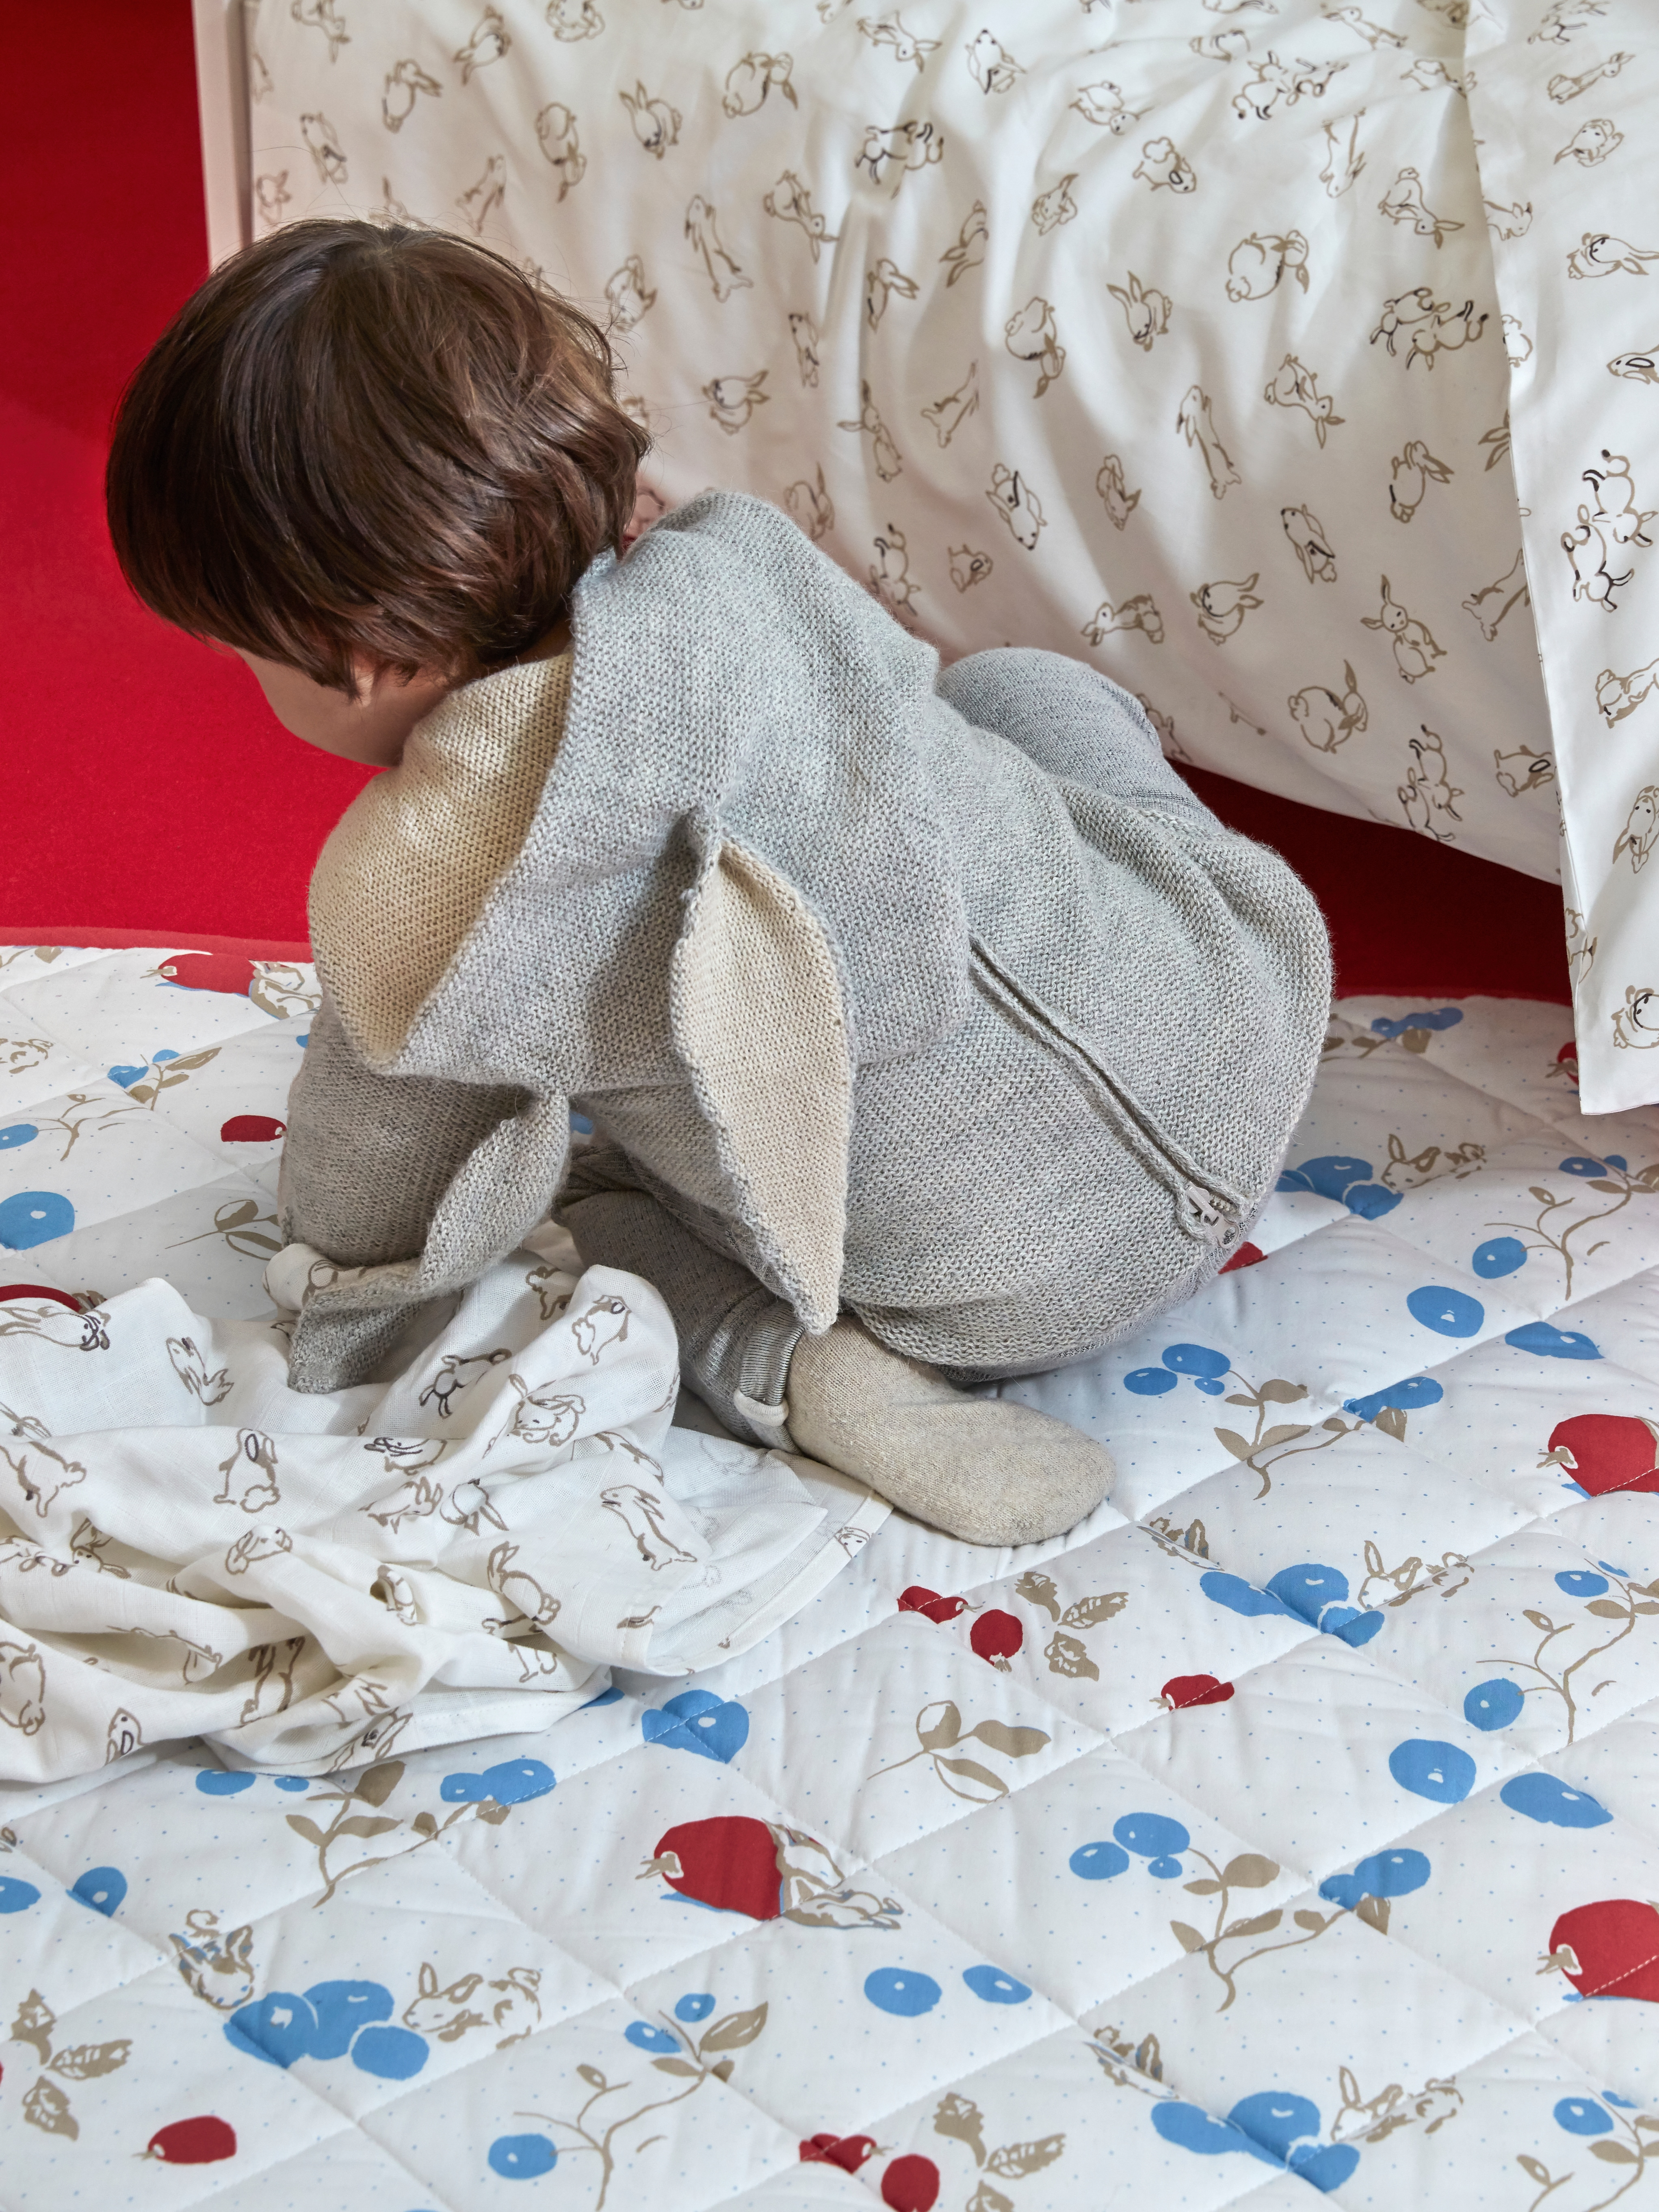 A young child in a rabbit suit, playing on a white and red RÖDHAKE quilt blanket with a rabbits and blueberries design.